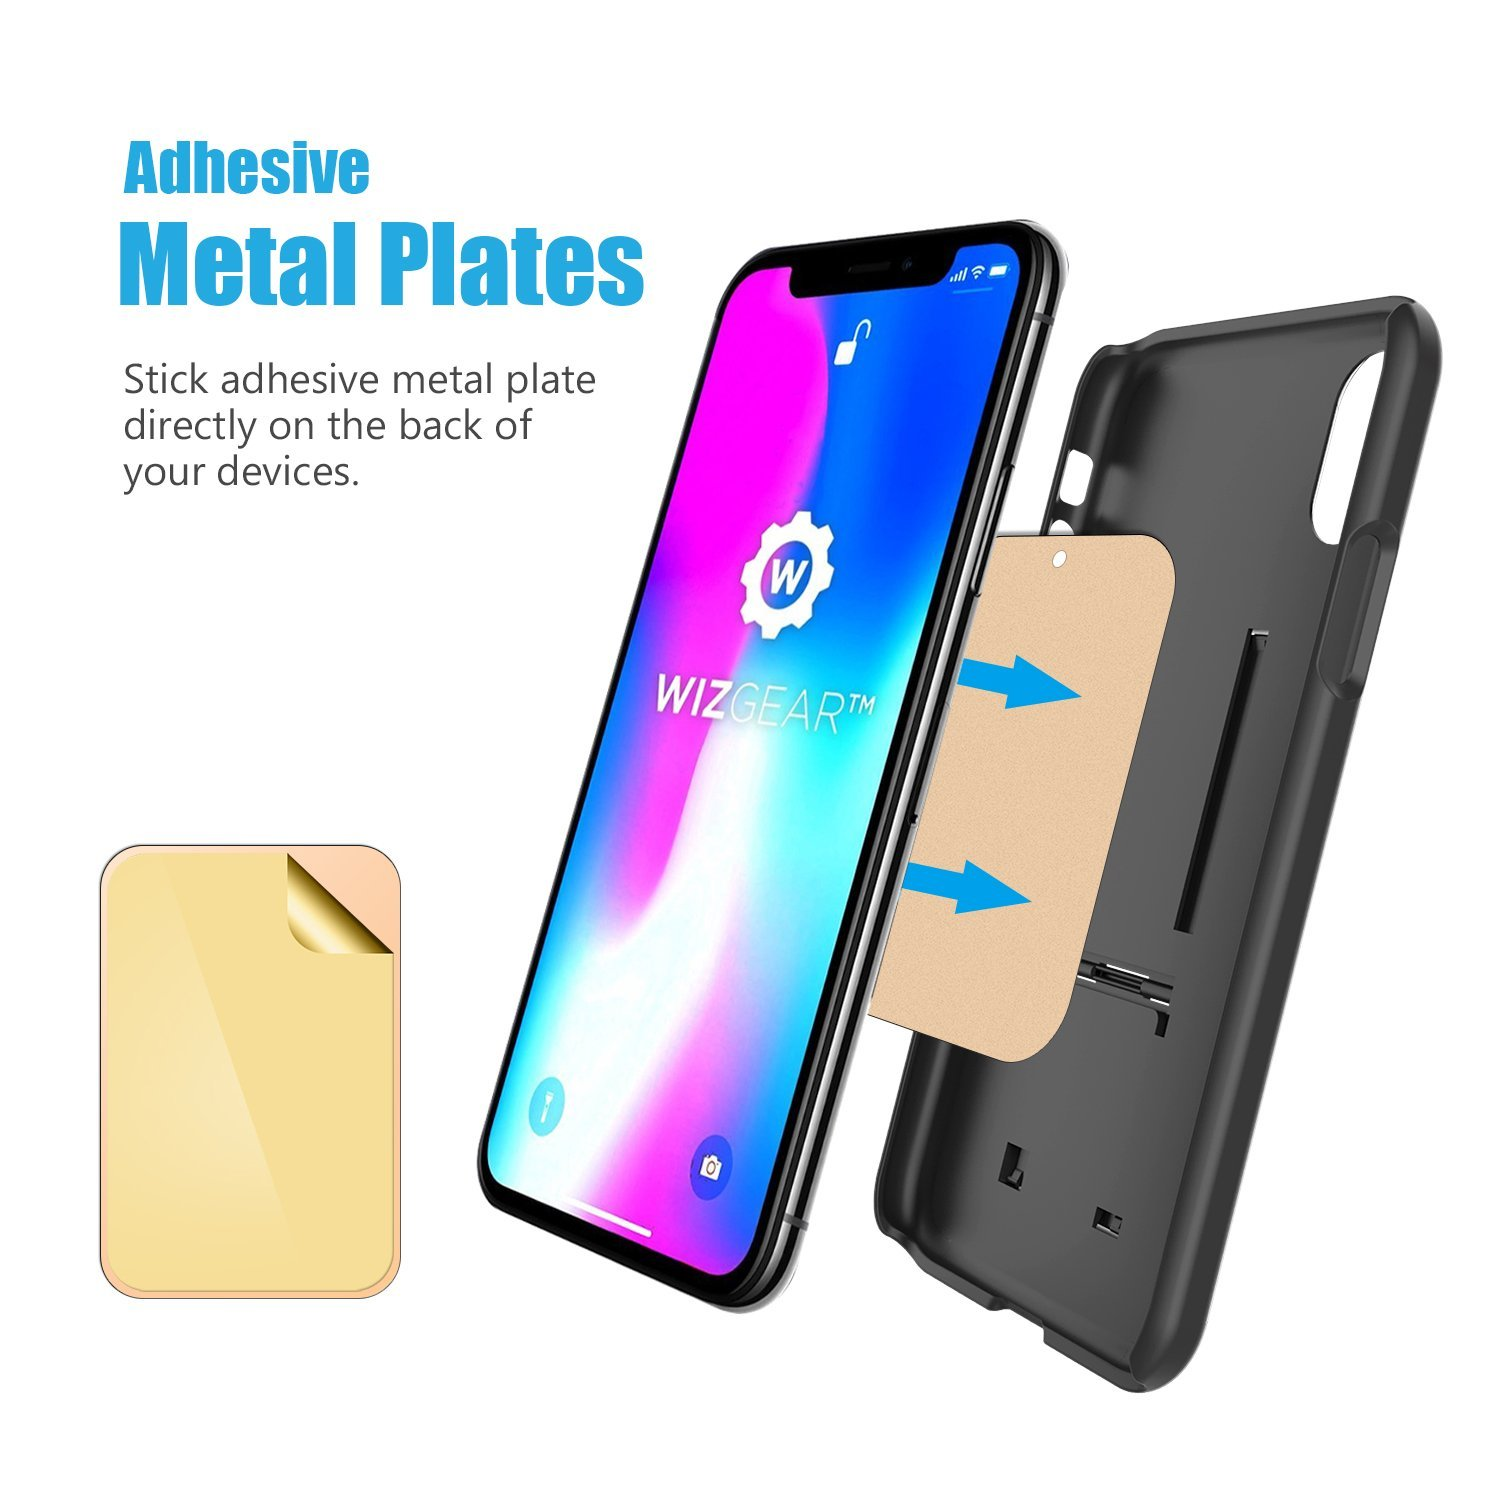 Compatible with Magnetic mounts 4 Pack X4 Pack 2 Rectangle and 2 Round Mount Metal Plate with Adhesive for Magnetic Cradle-Less Mount